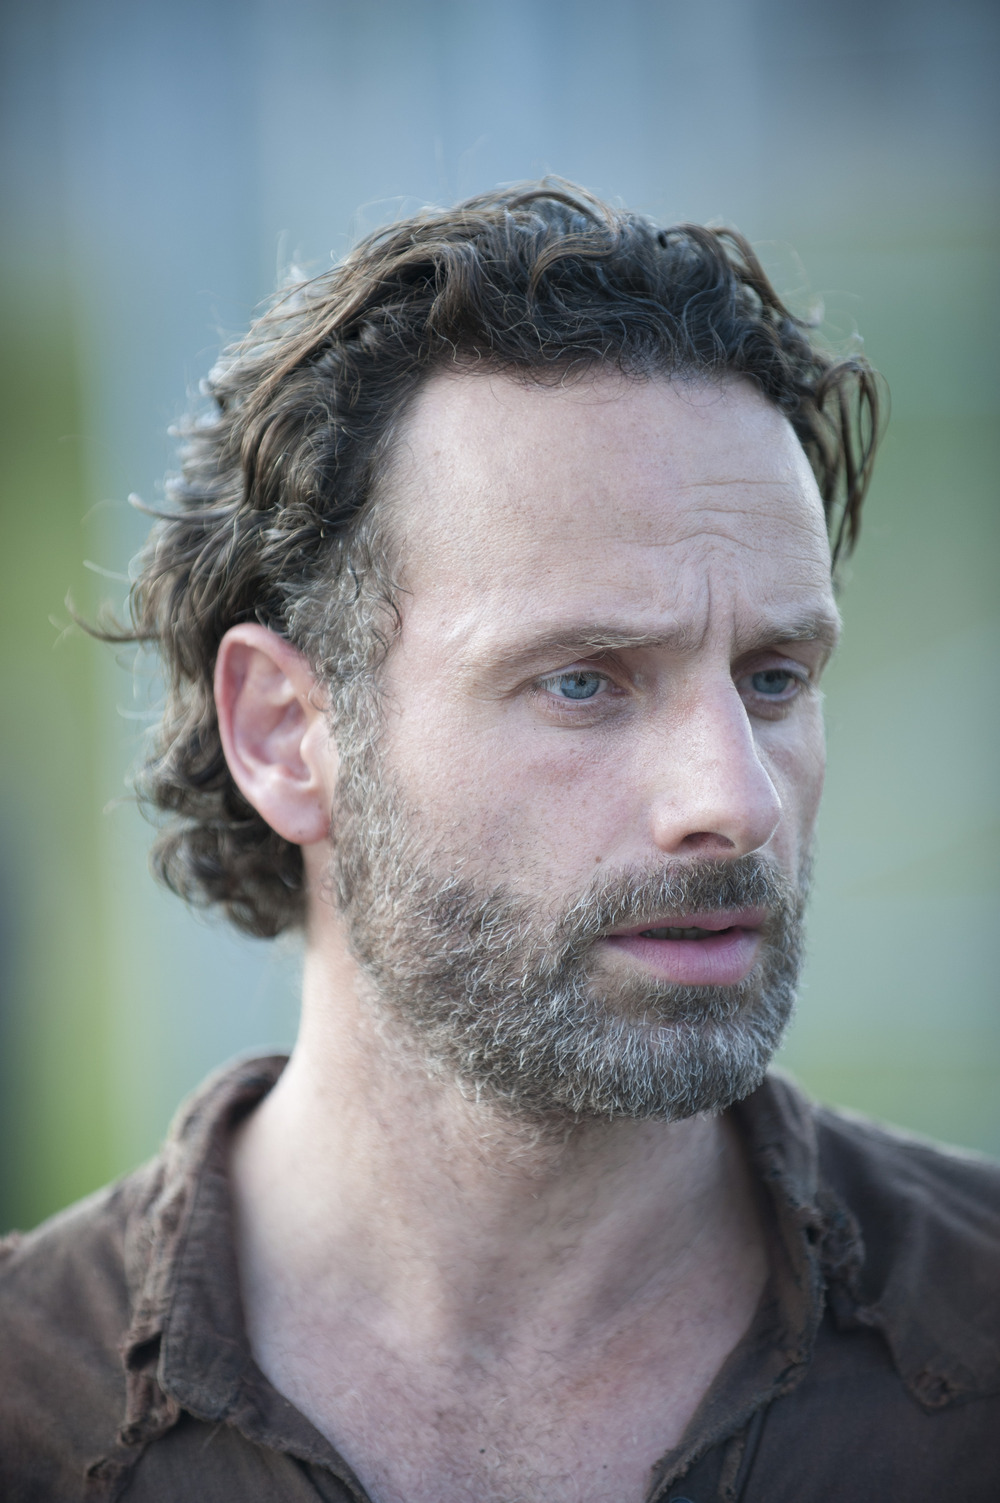 The Walking Dead Season 4: Will We See Tony (Guy Who Saw Rick Under the Bed) Again?